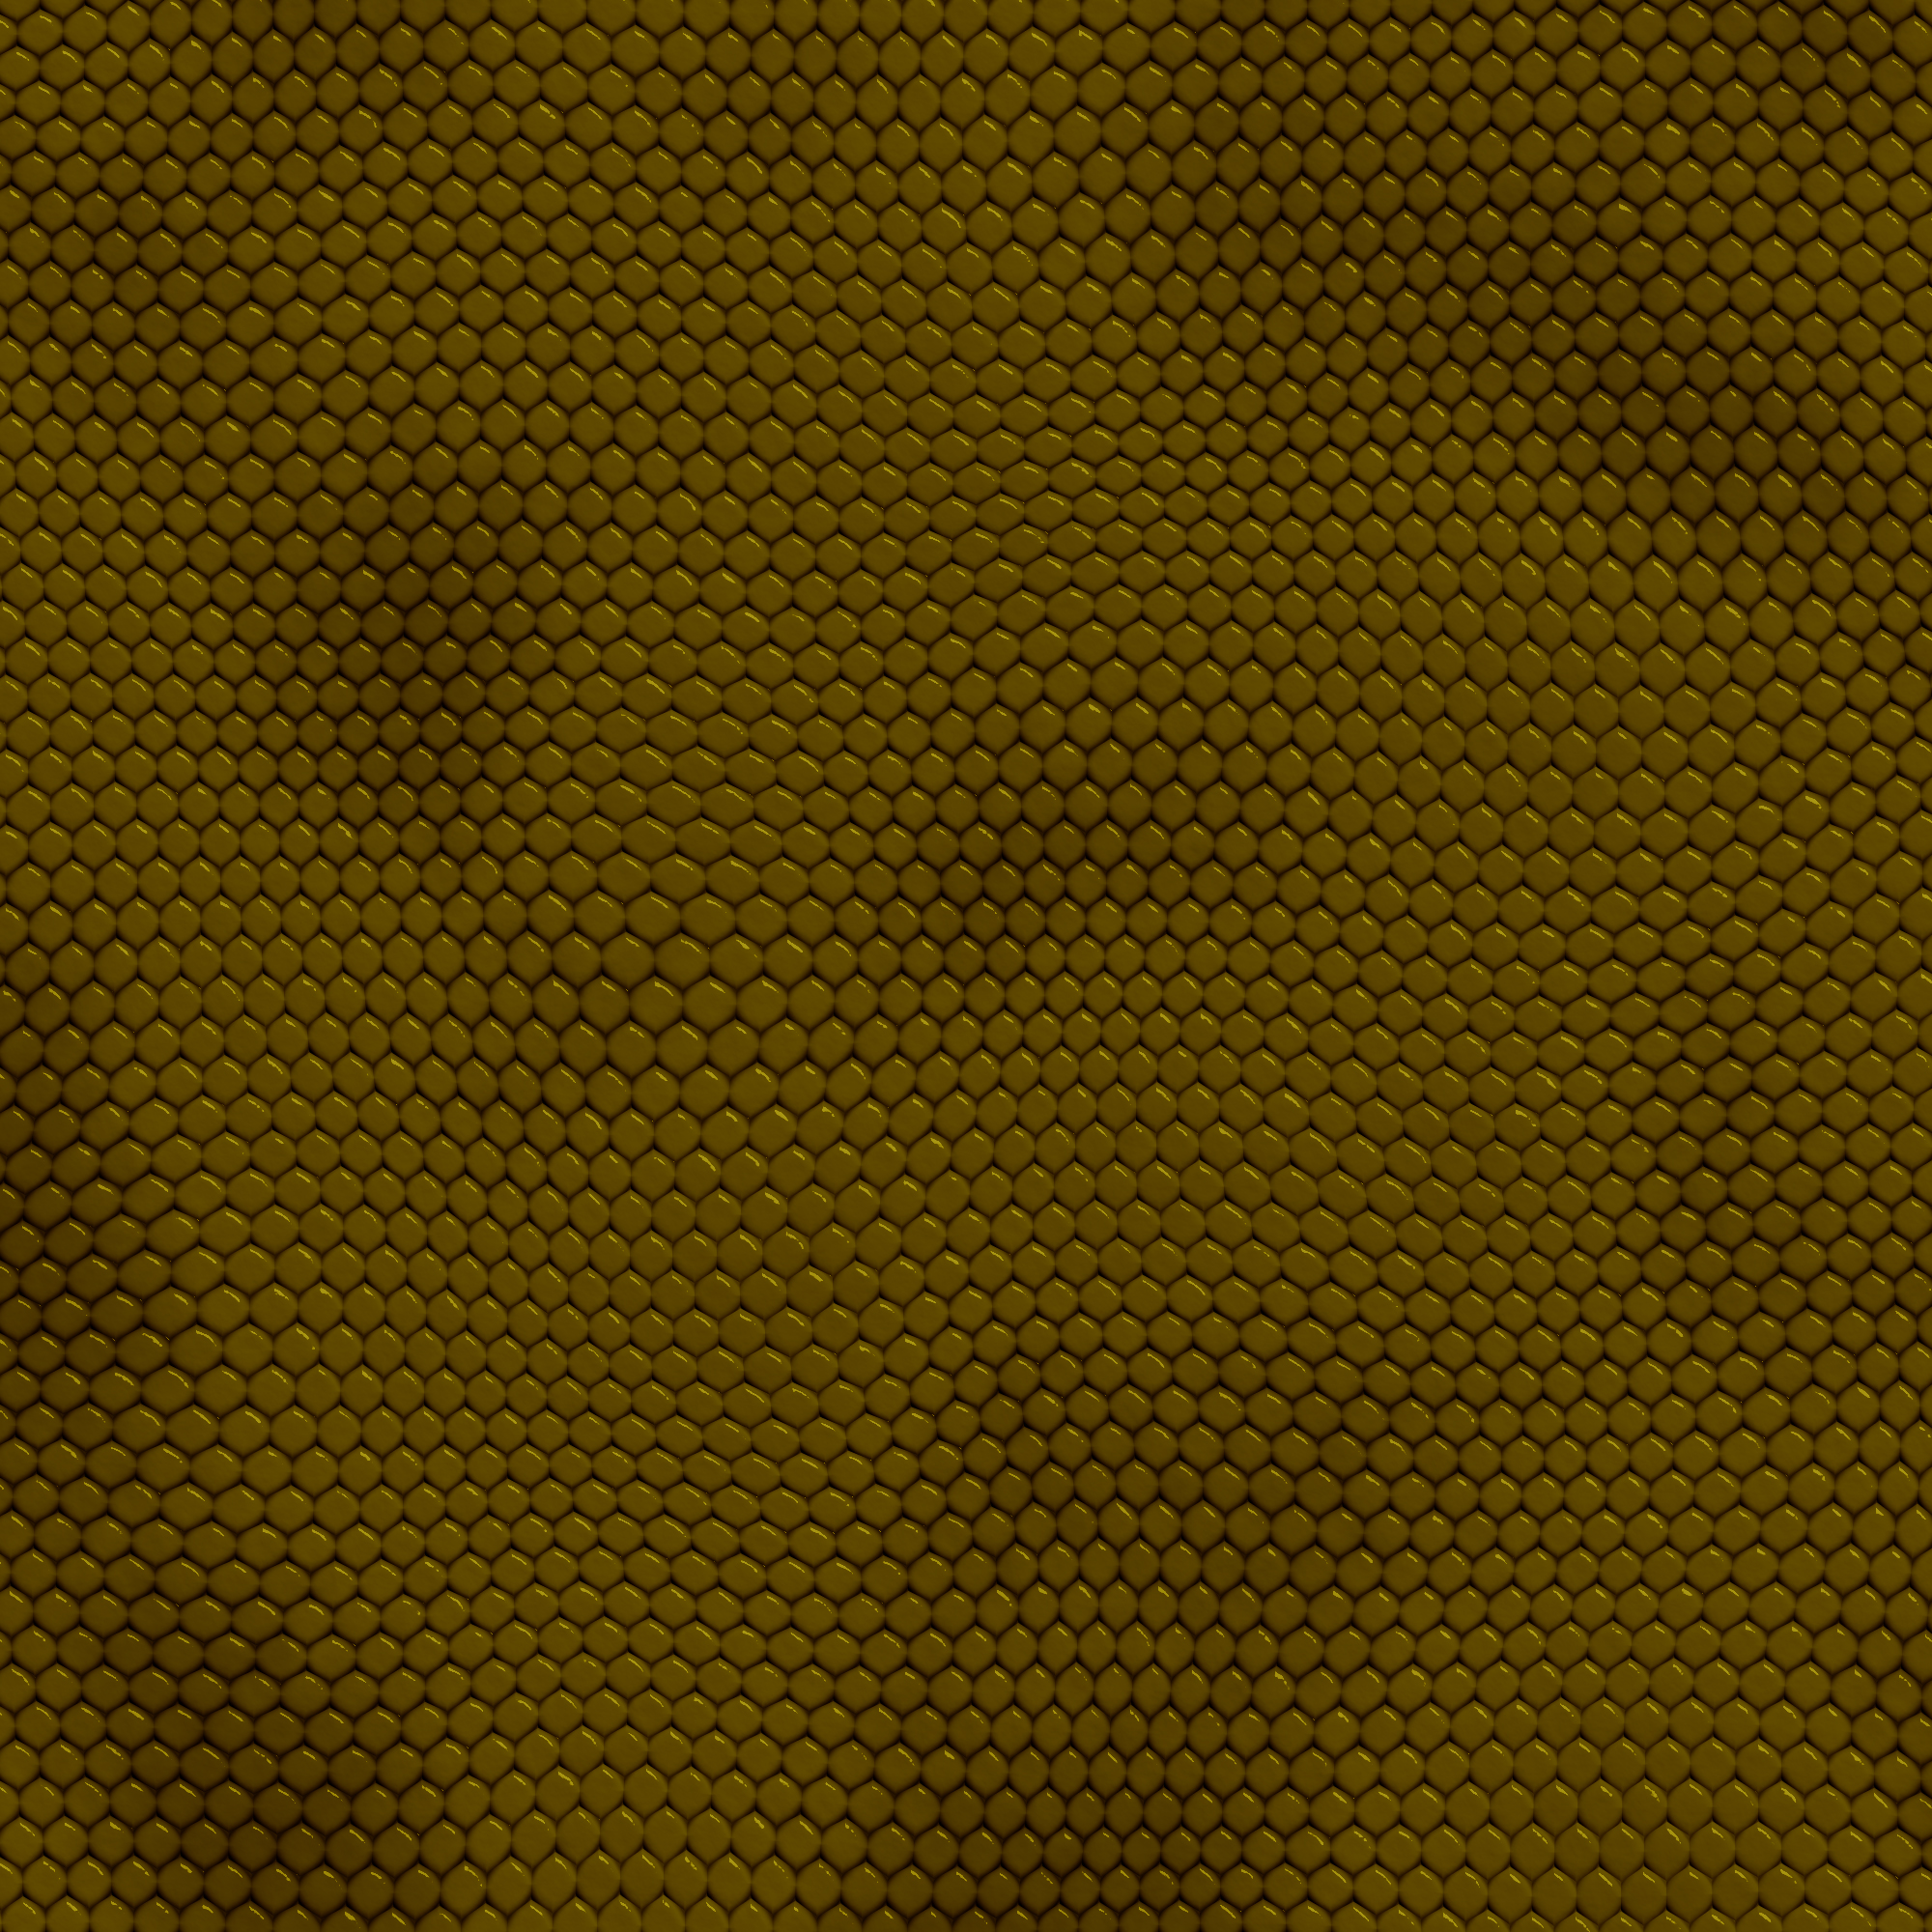 reptiles skin texture, texture skin reptile, lizard, snakes, frog, snake, snake skin, background